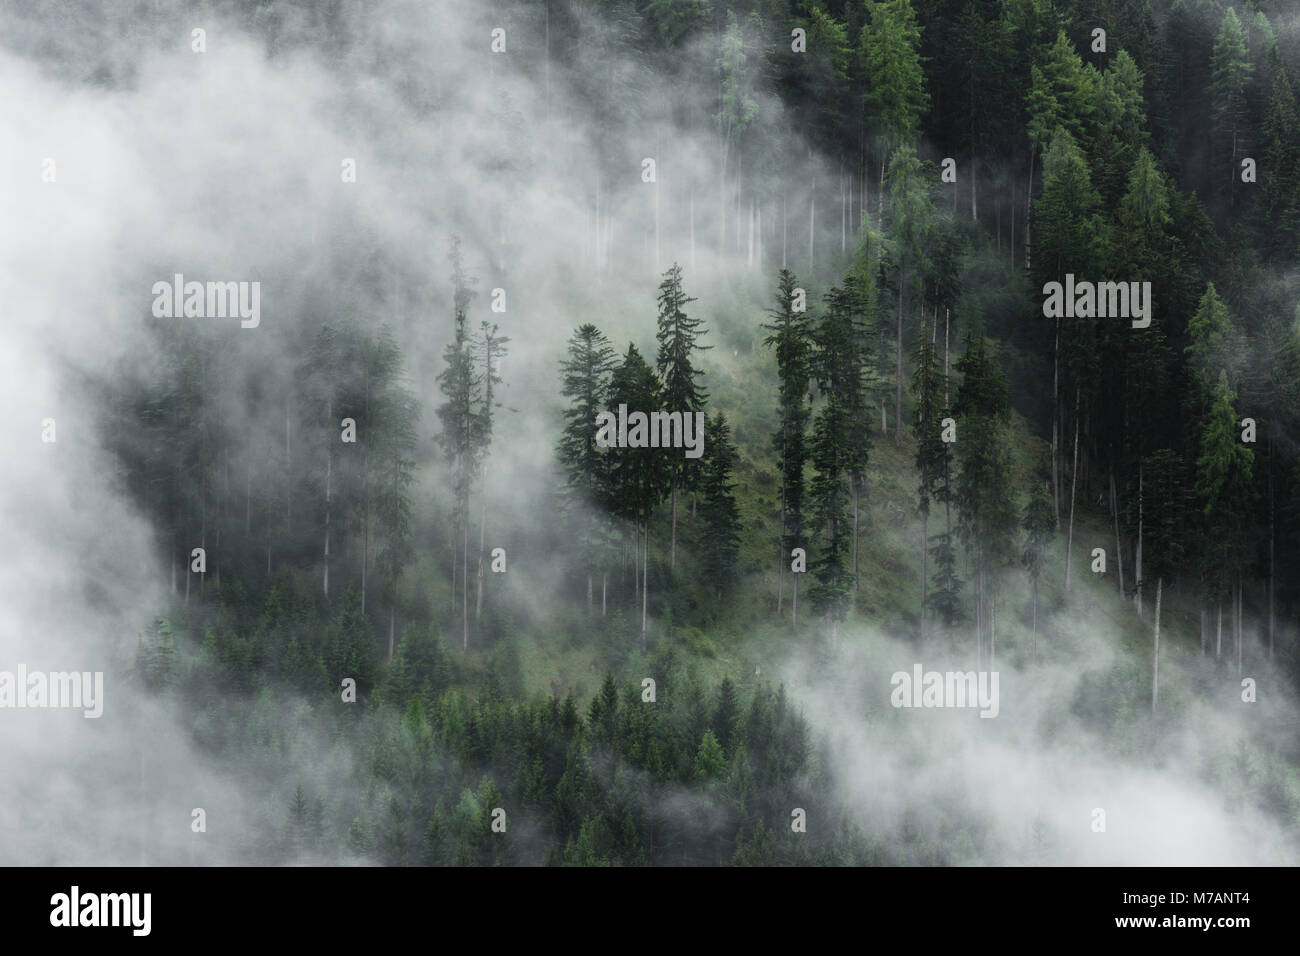 Misty mood in the Dolomite Alps with telephoto lens, Italy - Stock Image